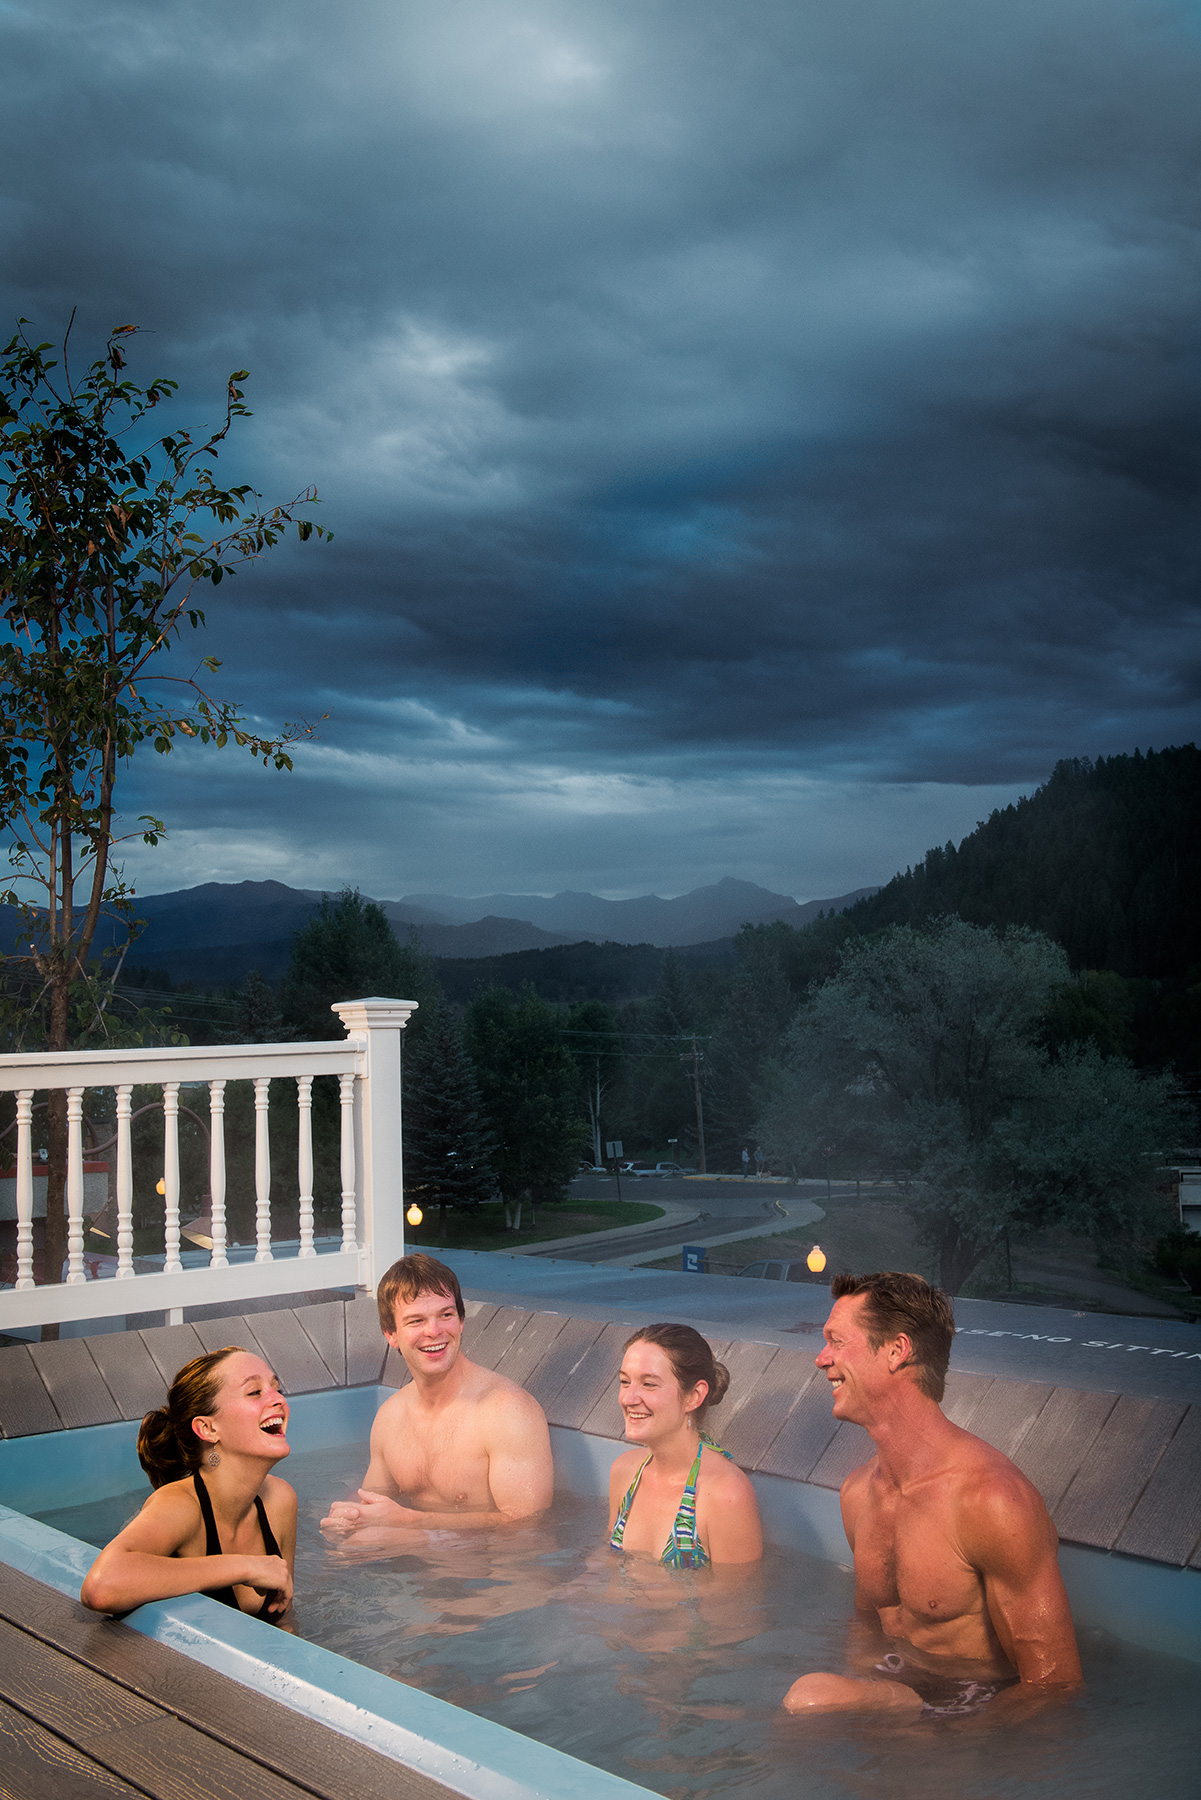 Advertising image of friends soaking in a rooftop hot spring tub in Pagosa Springs, CO